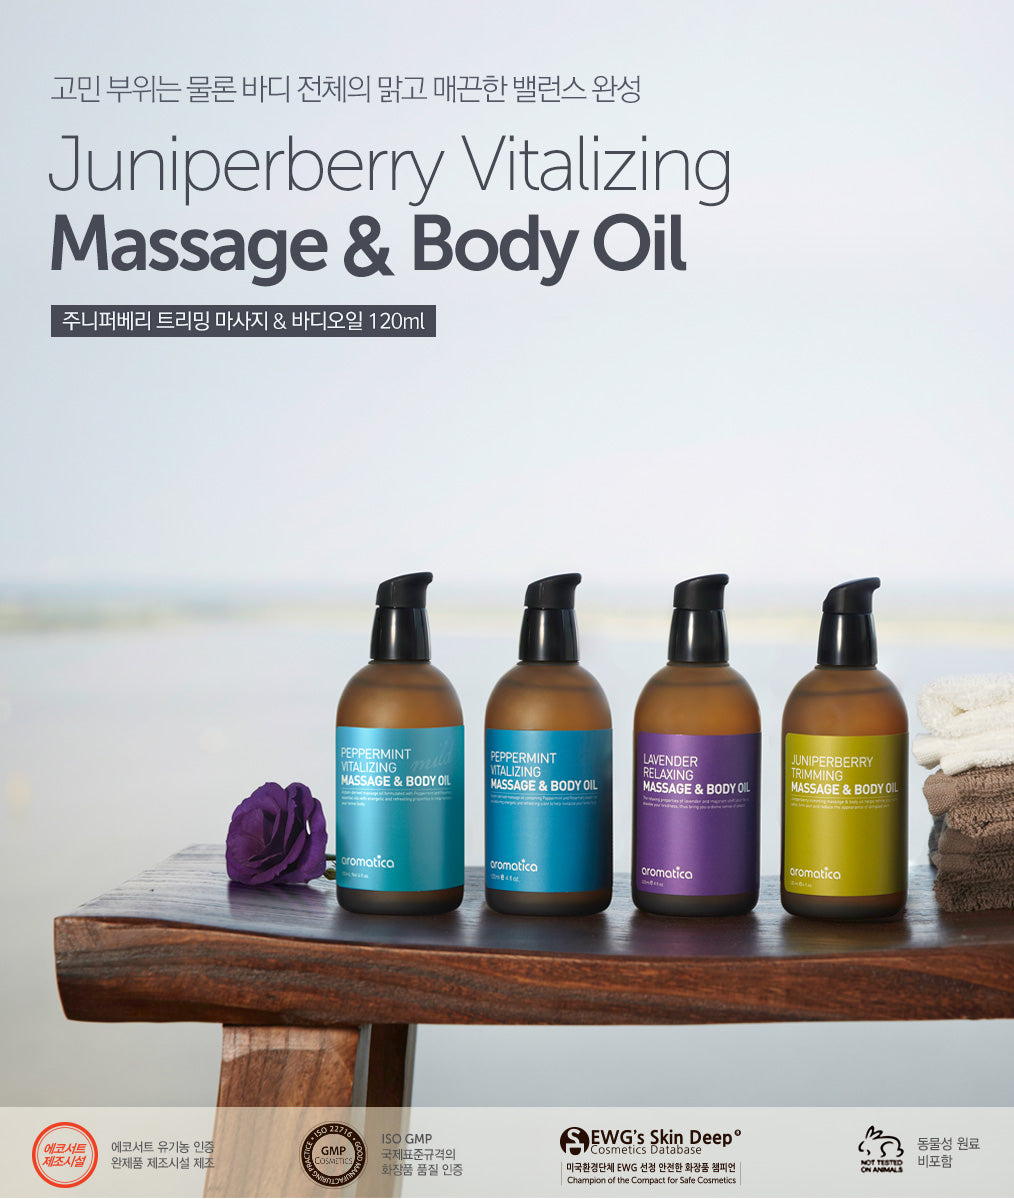 Aromatica – Juniperberry Trimming Massage & Body Oil